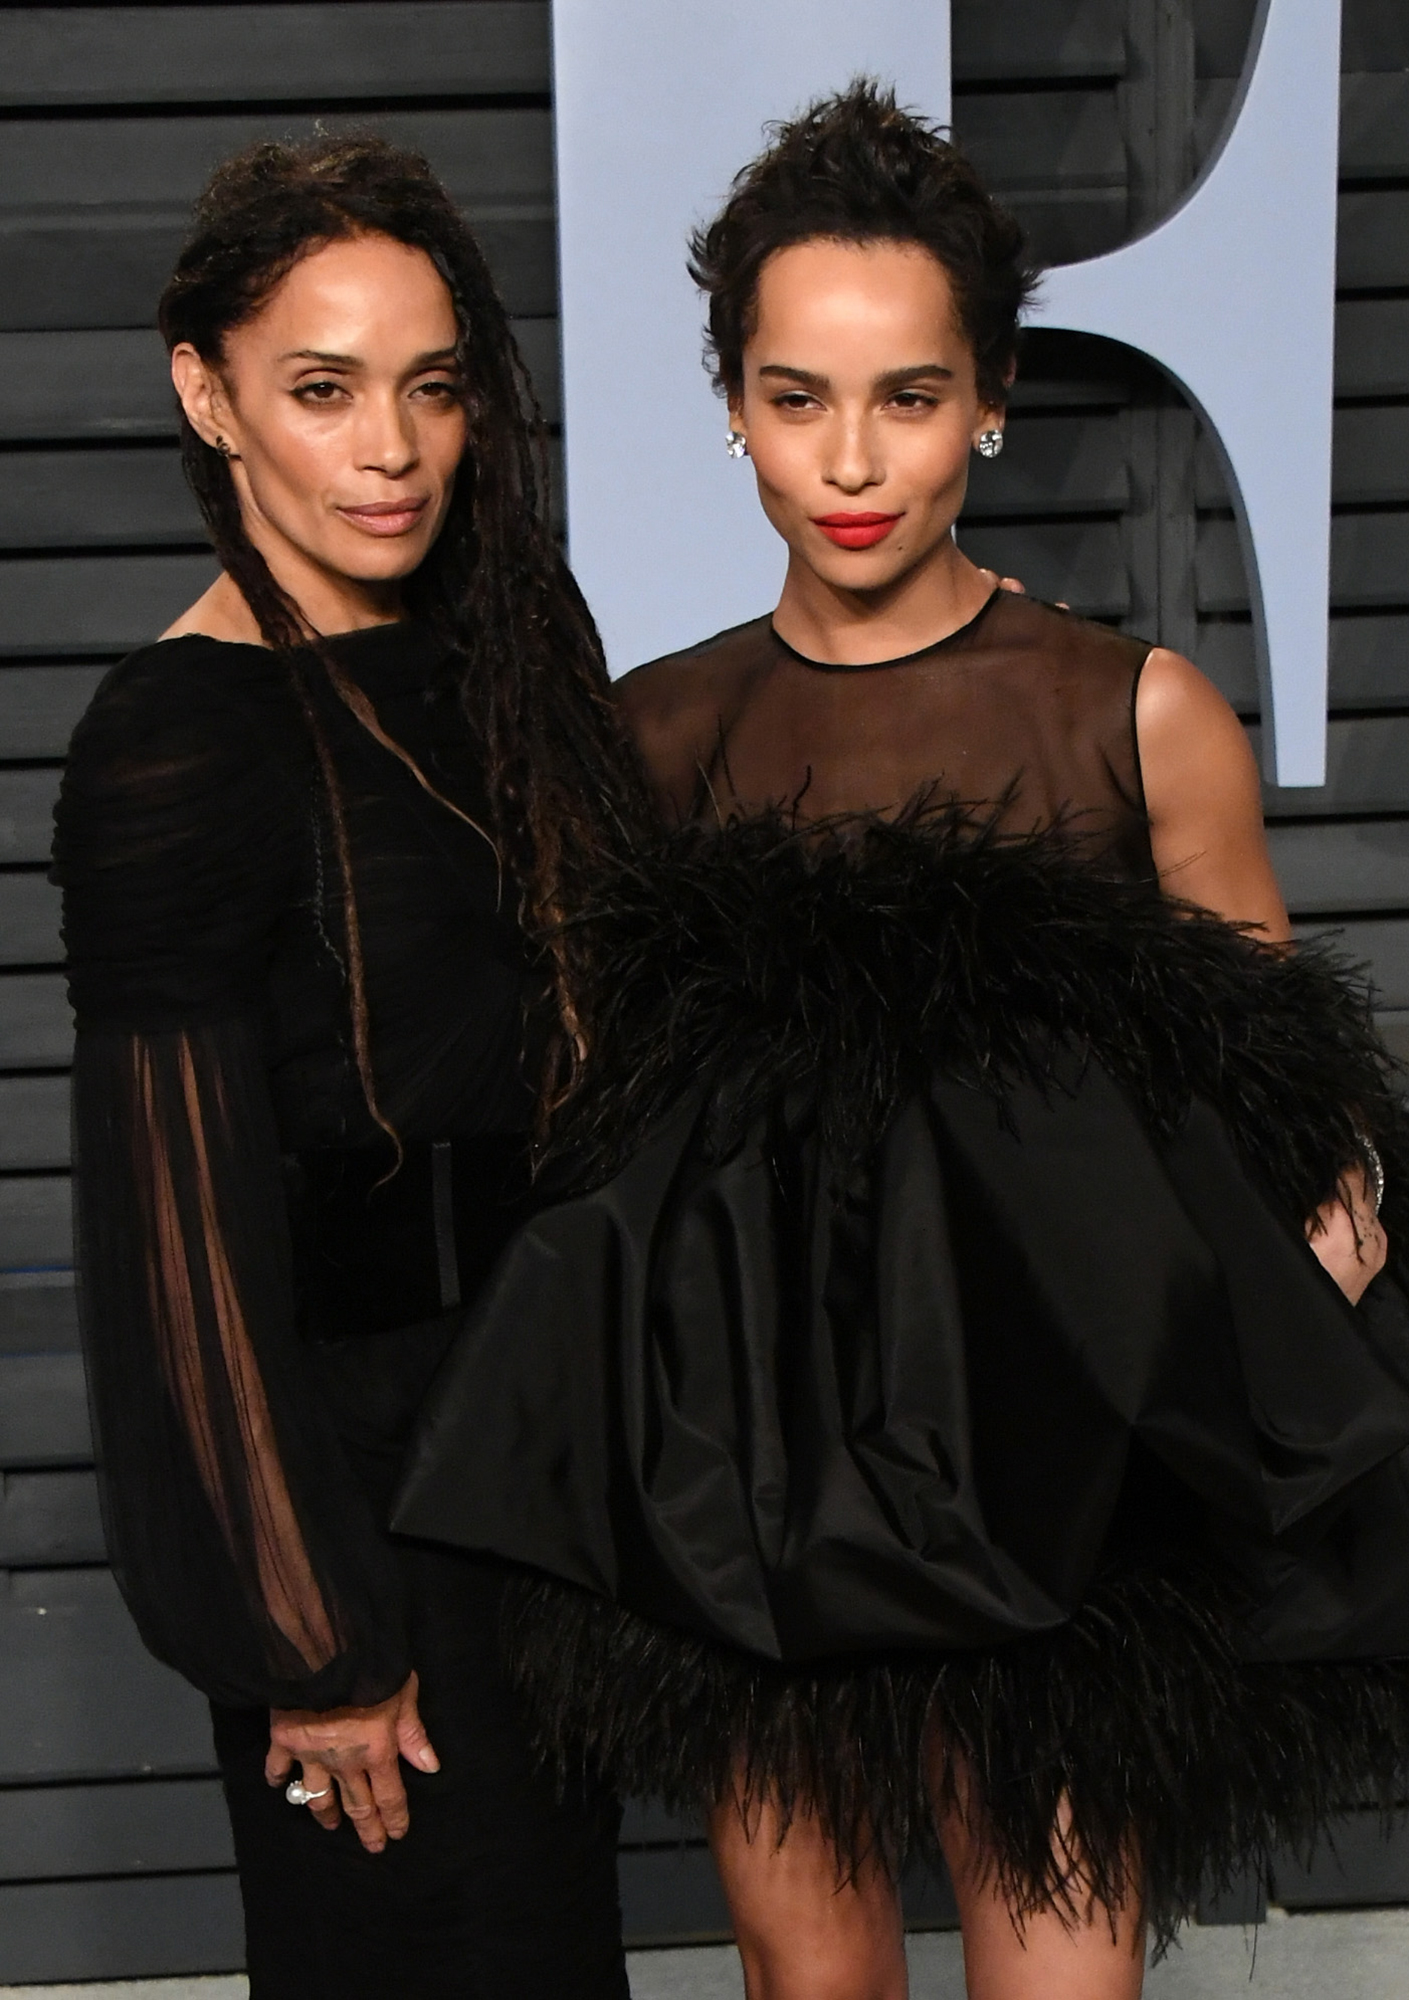 Famous Mother-Daughter Pairs - Twins!